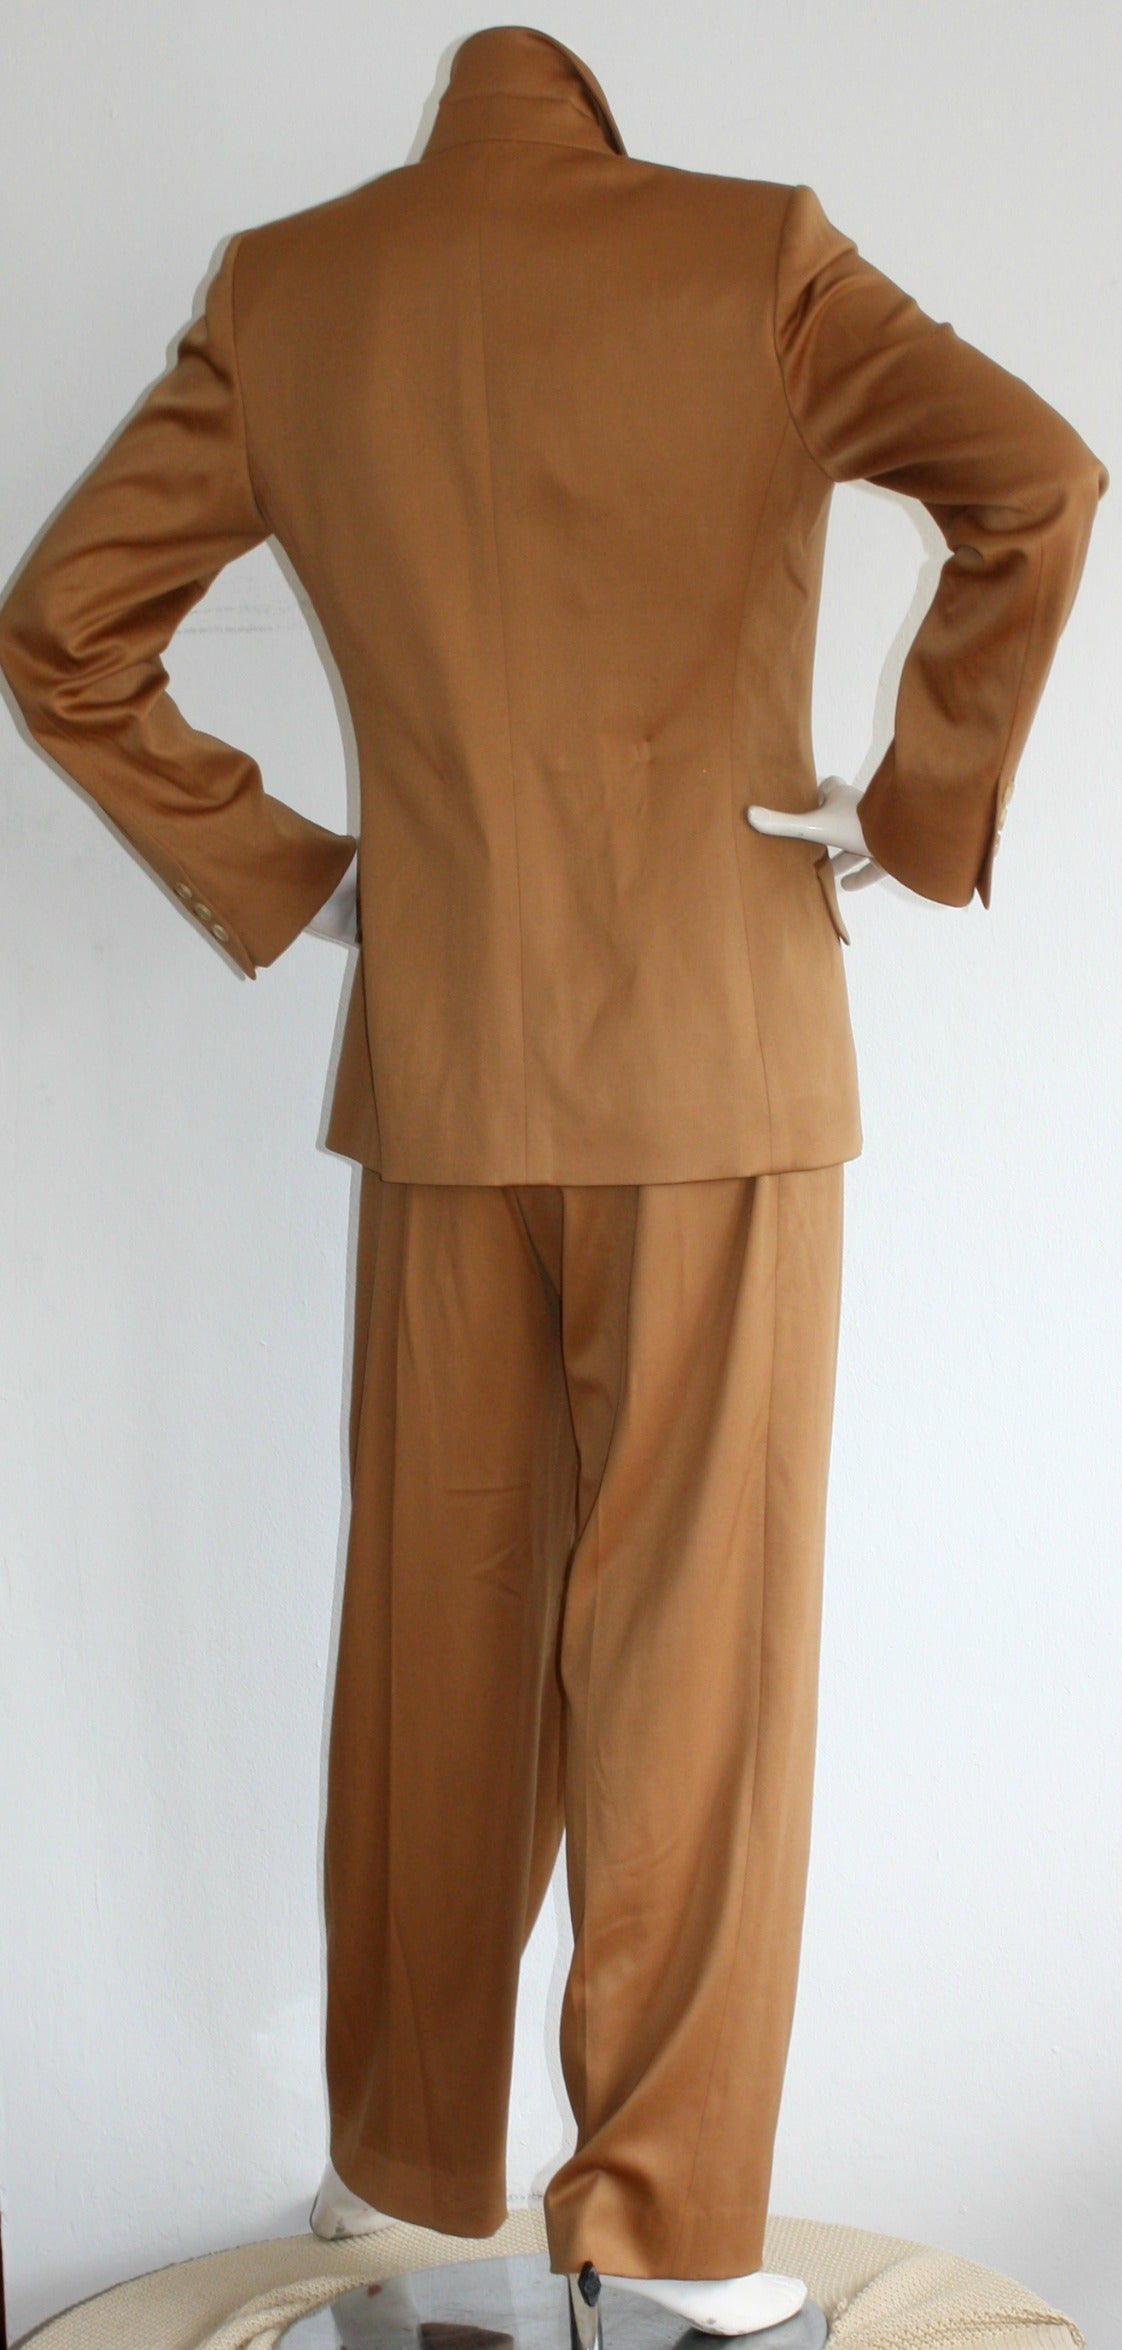 Iconic Vintage Yves Saint Laurent Le Smoking Suit Double Breasted Chic 5